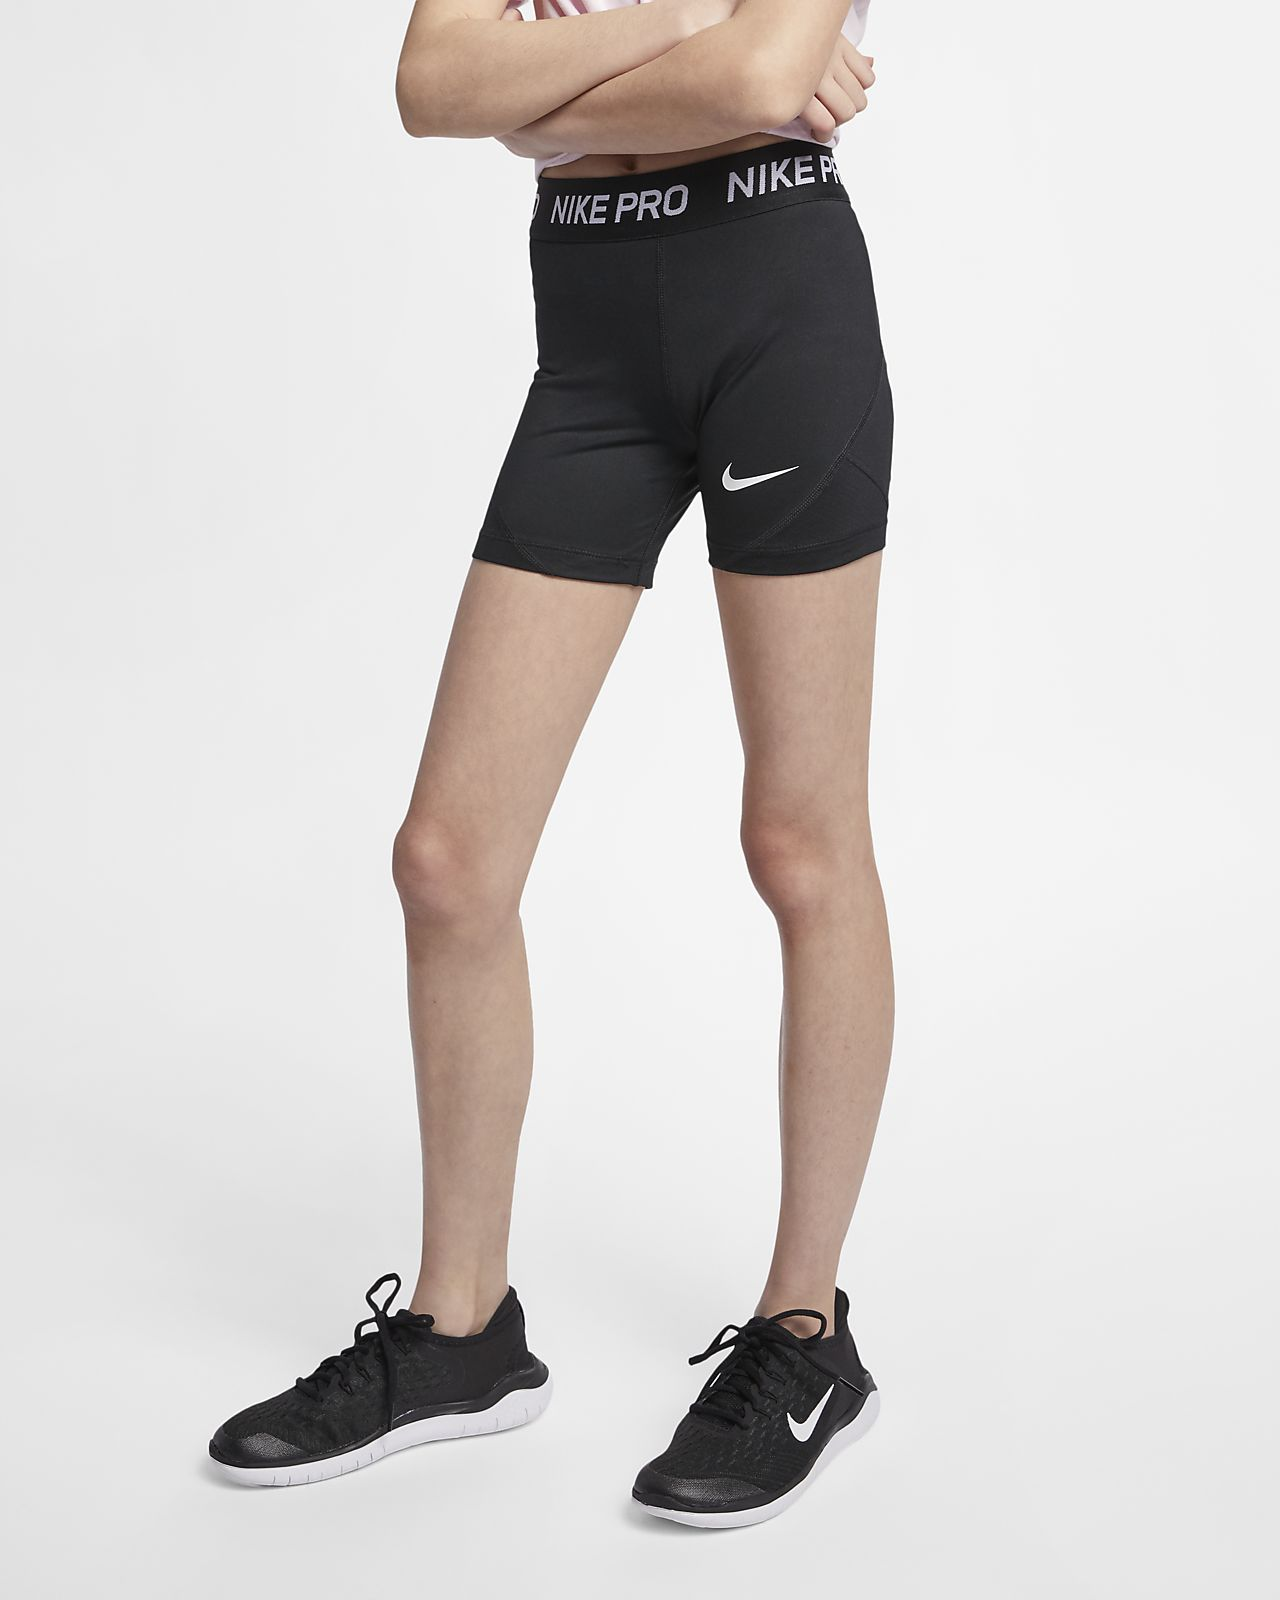 b1c96dc26841 Nike Pro Big Kids' (Girls') Boyshorts. Nike.com